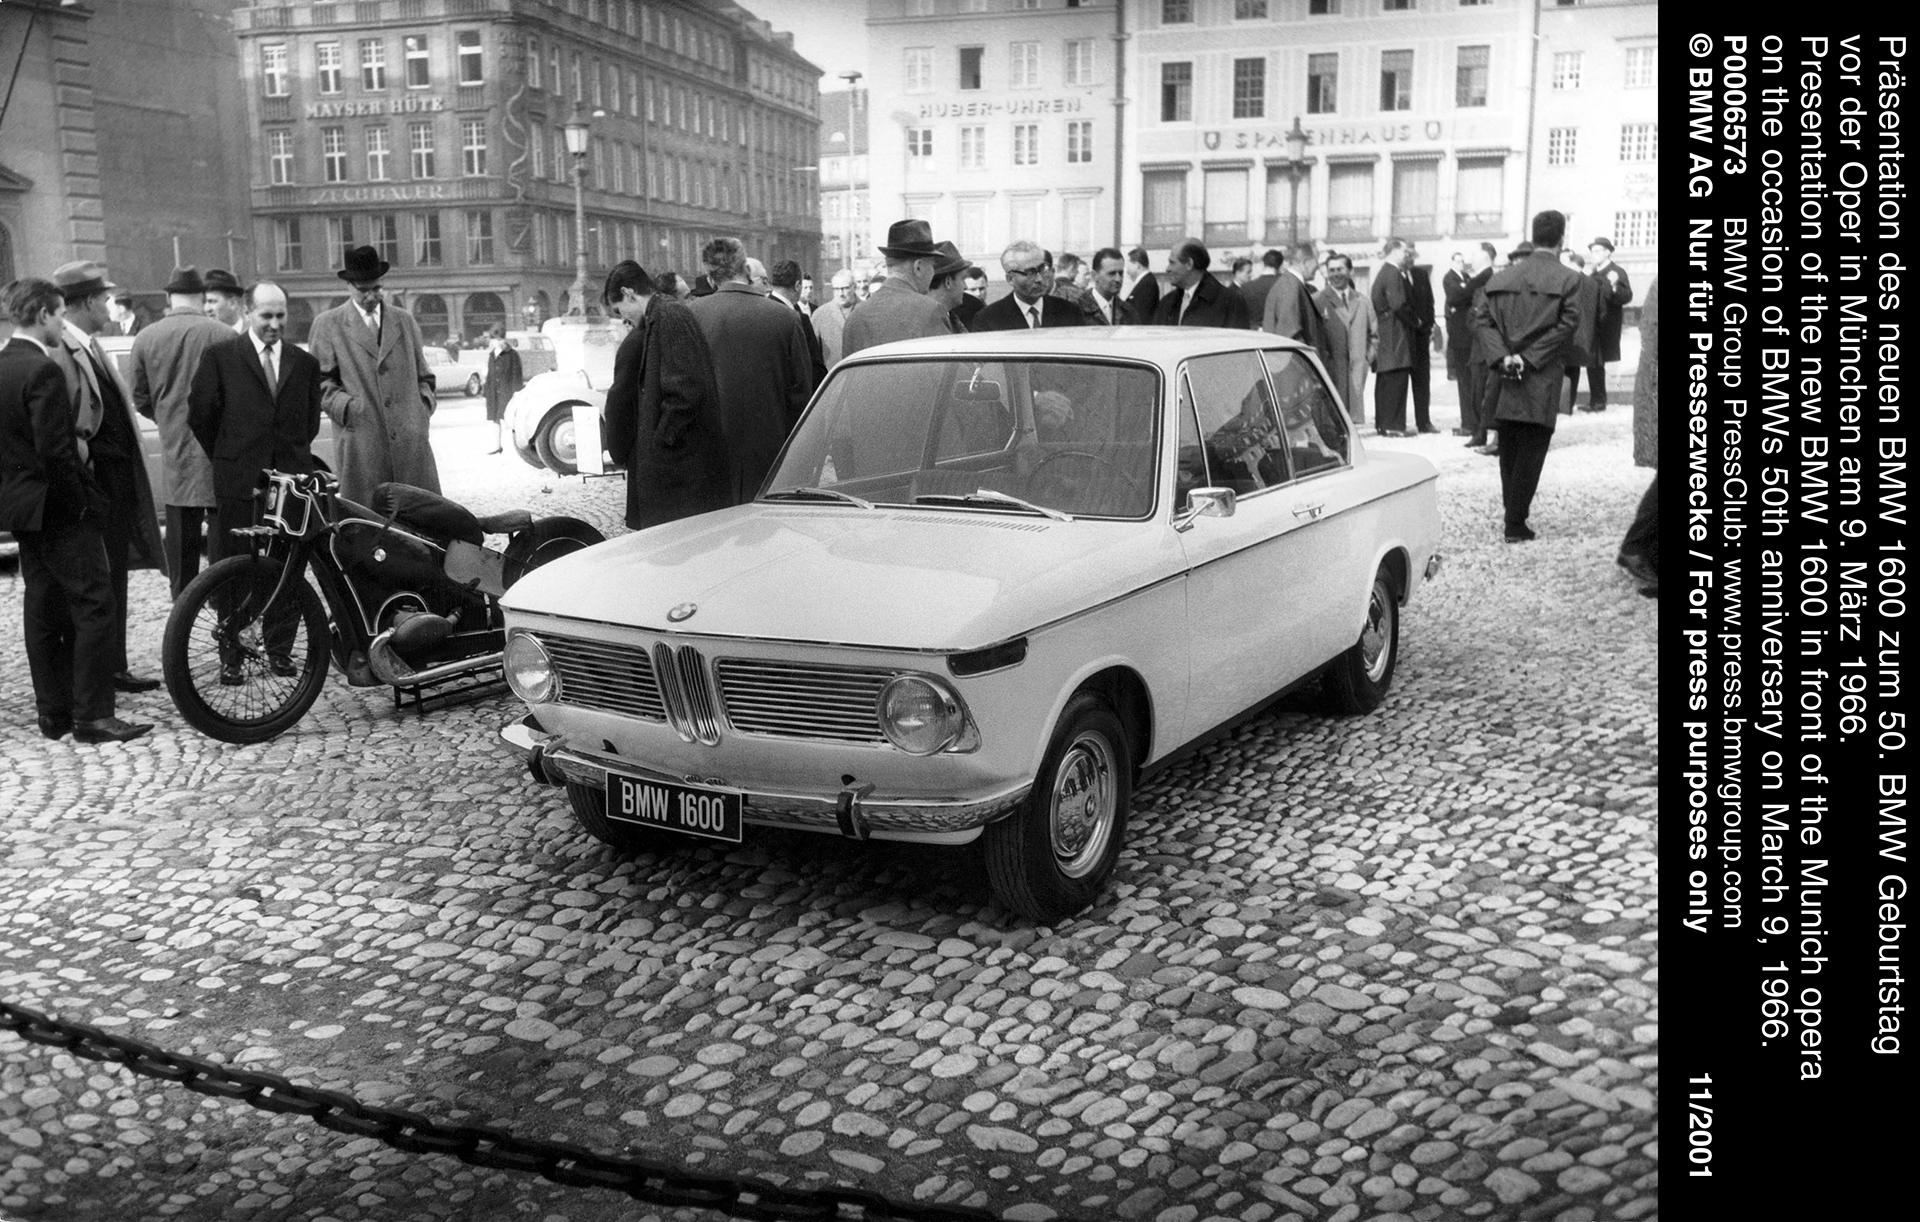 BMW 1600 - Munich opera - BMWs 50th anniversary - 1966